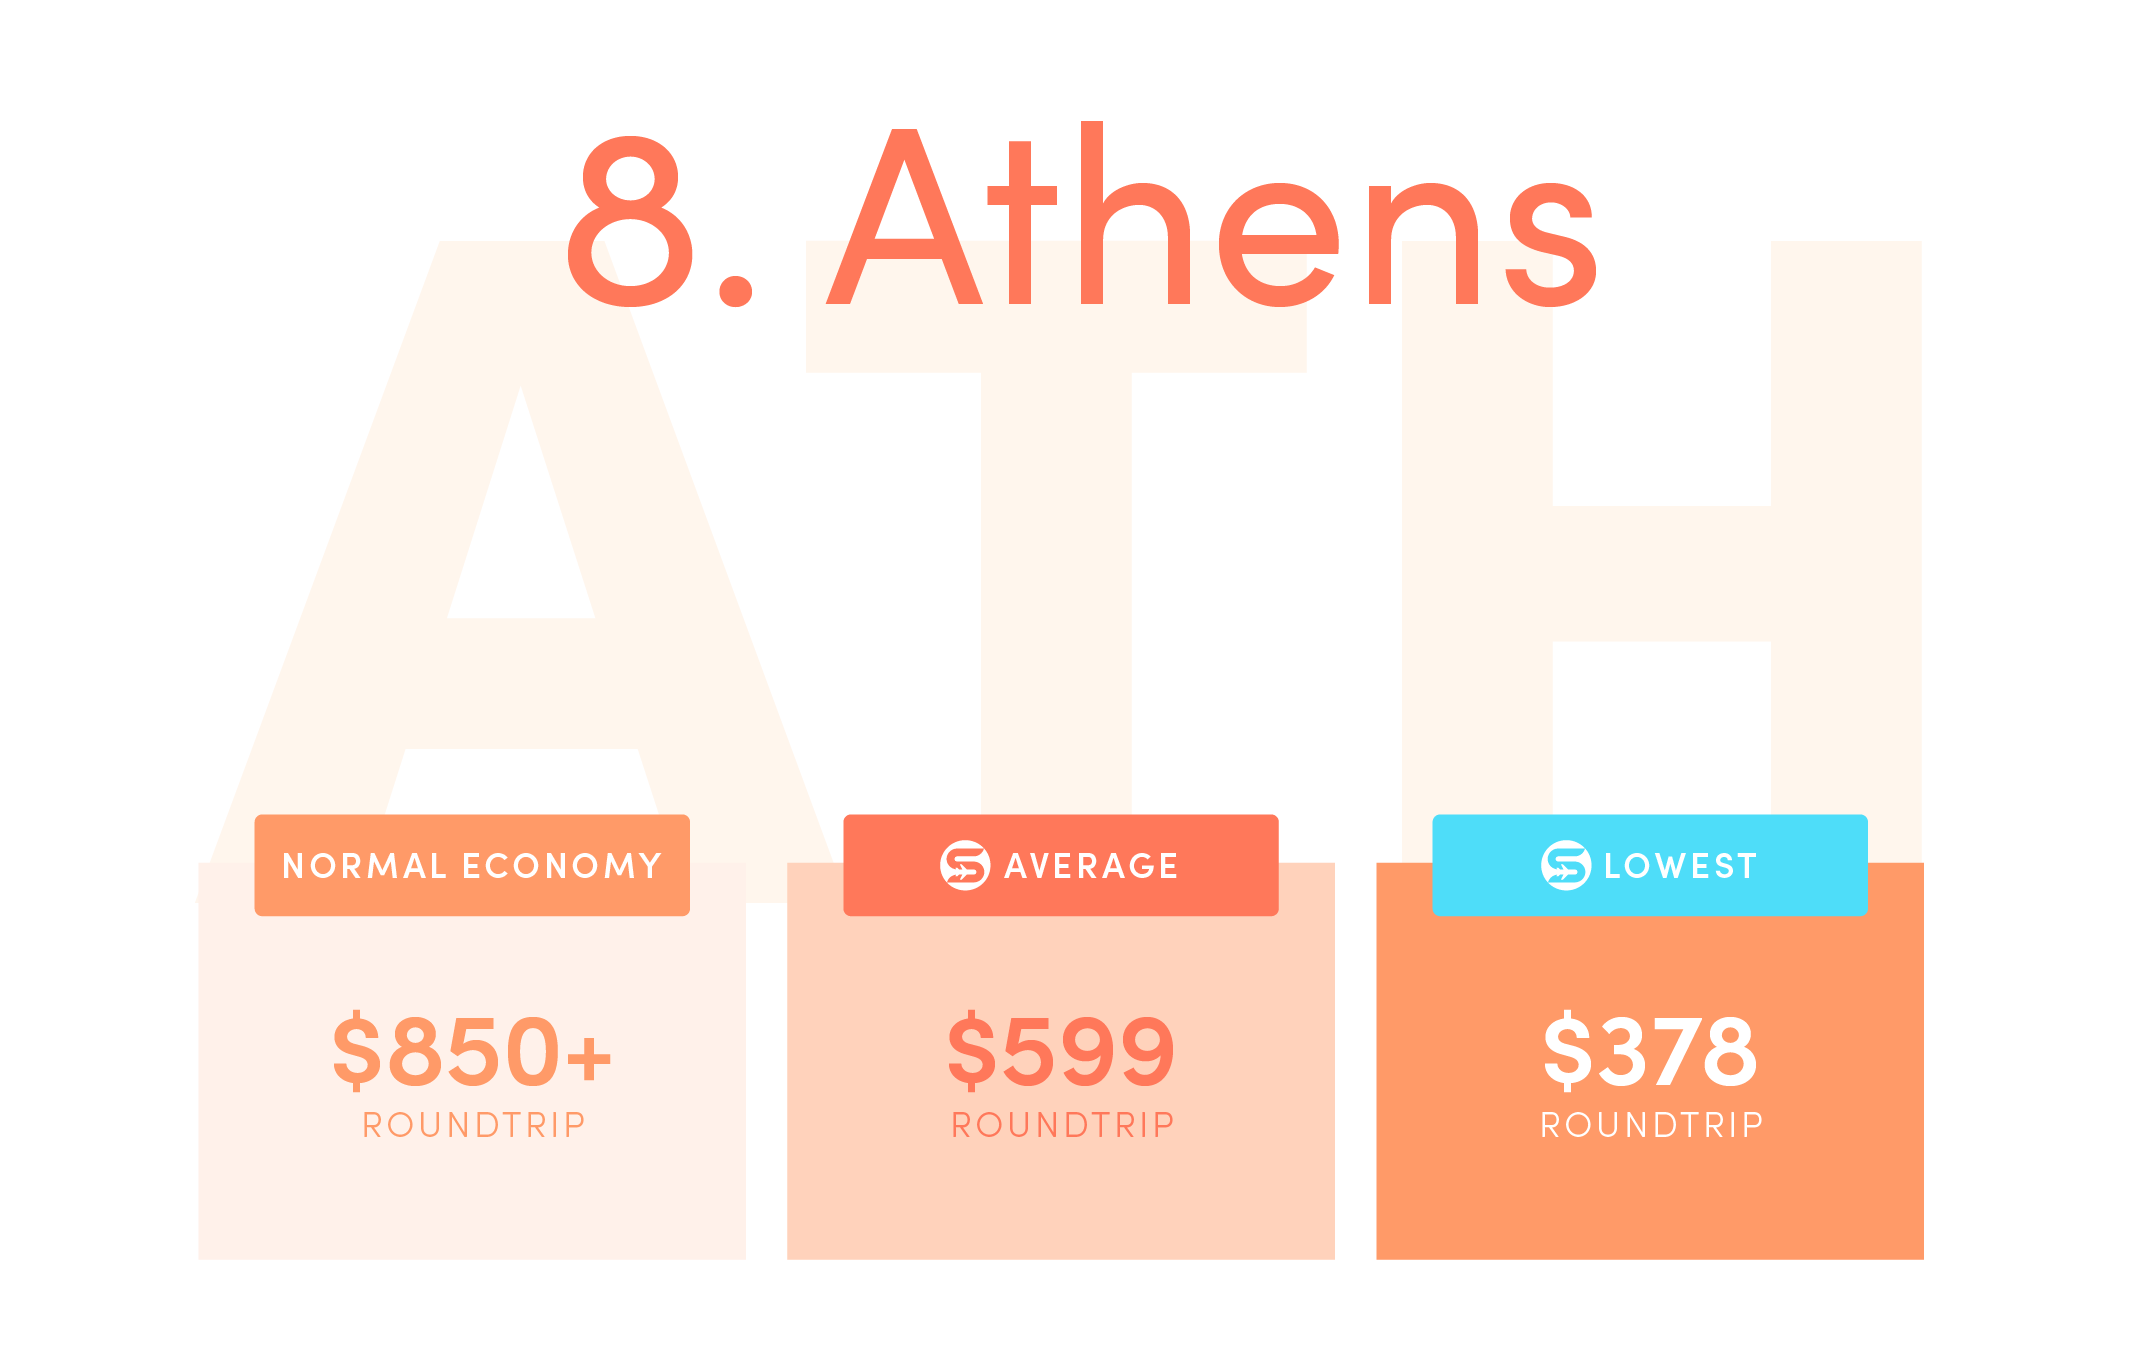 Athens (ATH) Normal economy price from the US: $850+ roundtrip. Average Scott's Cheap Flights economy price: $599 roundtrip. Lowest Scott's Cheap Flights price in 2021: $378 roundtrip.